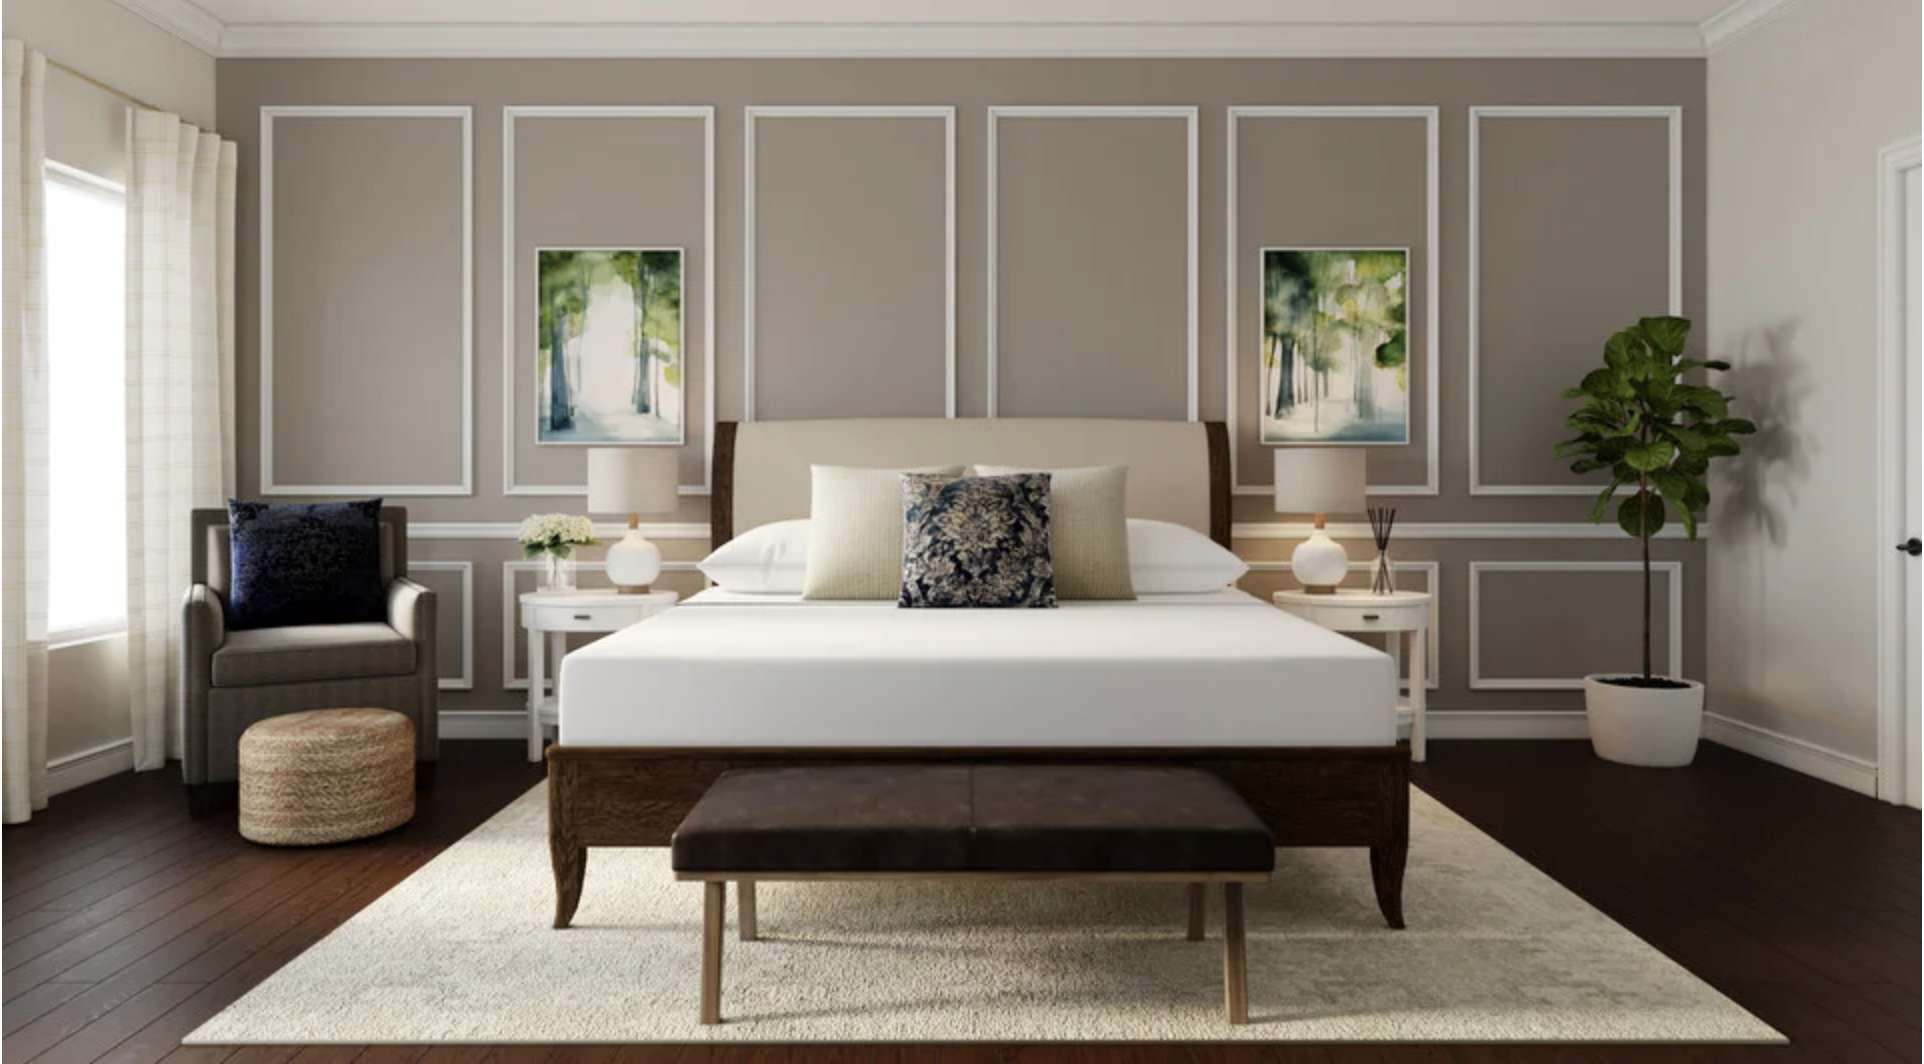 bedroom with white trim molding